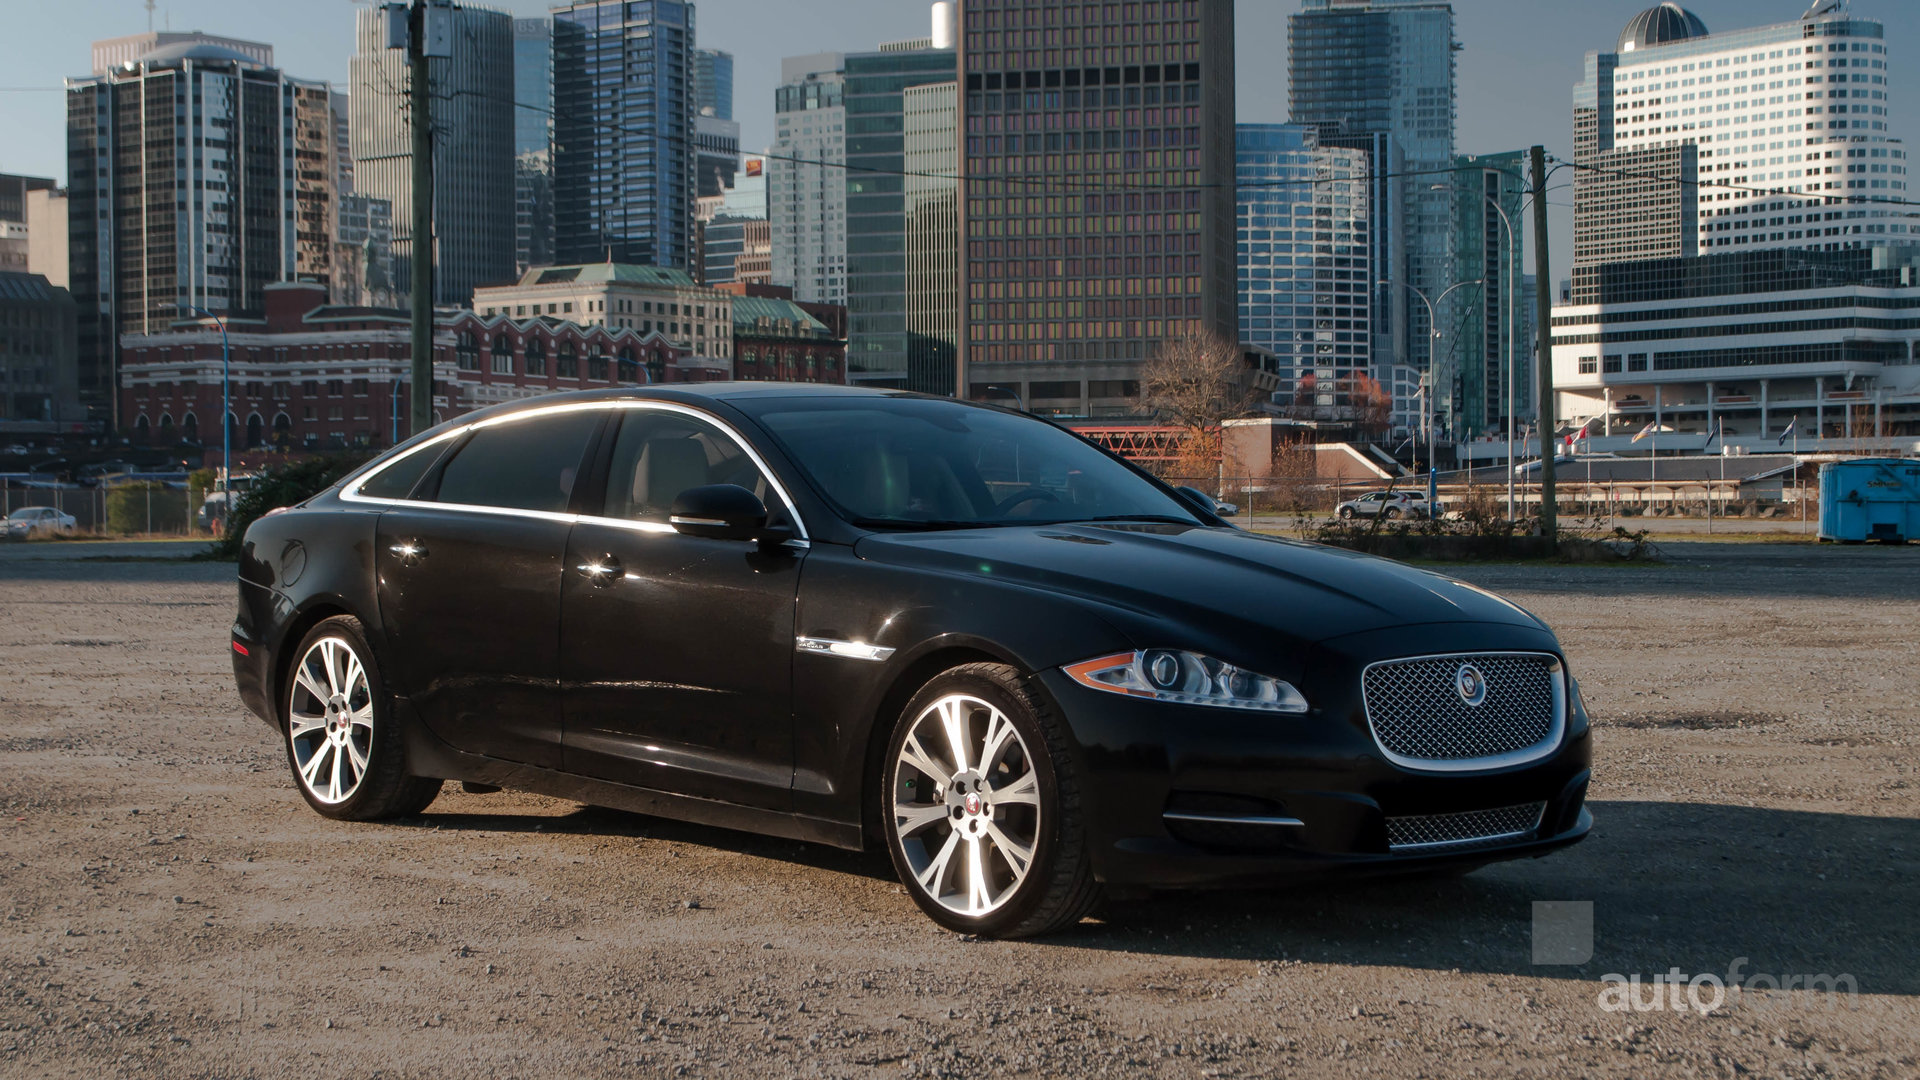 s driver supercharged jaguar seat d the review xjl udpv x